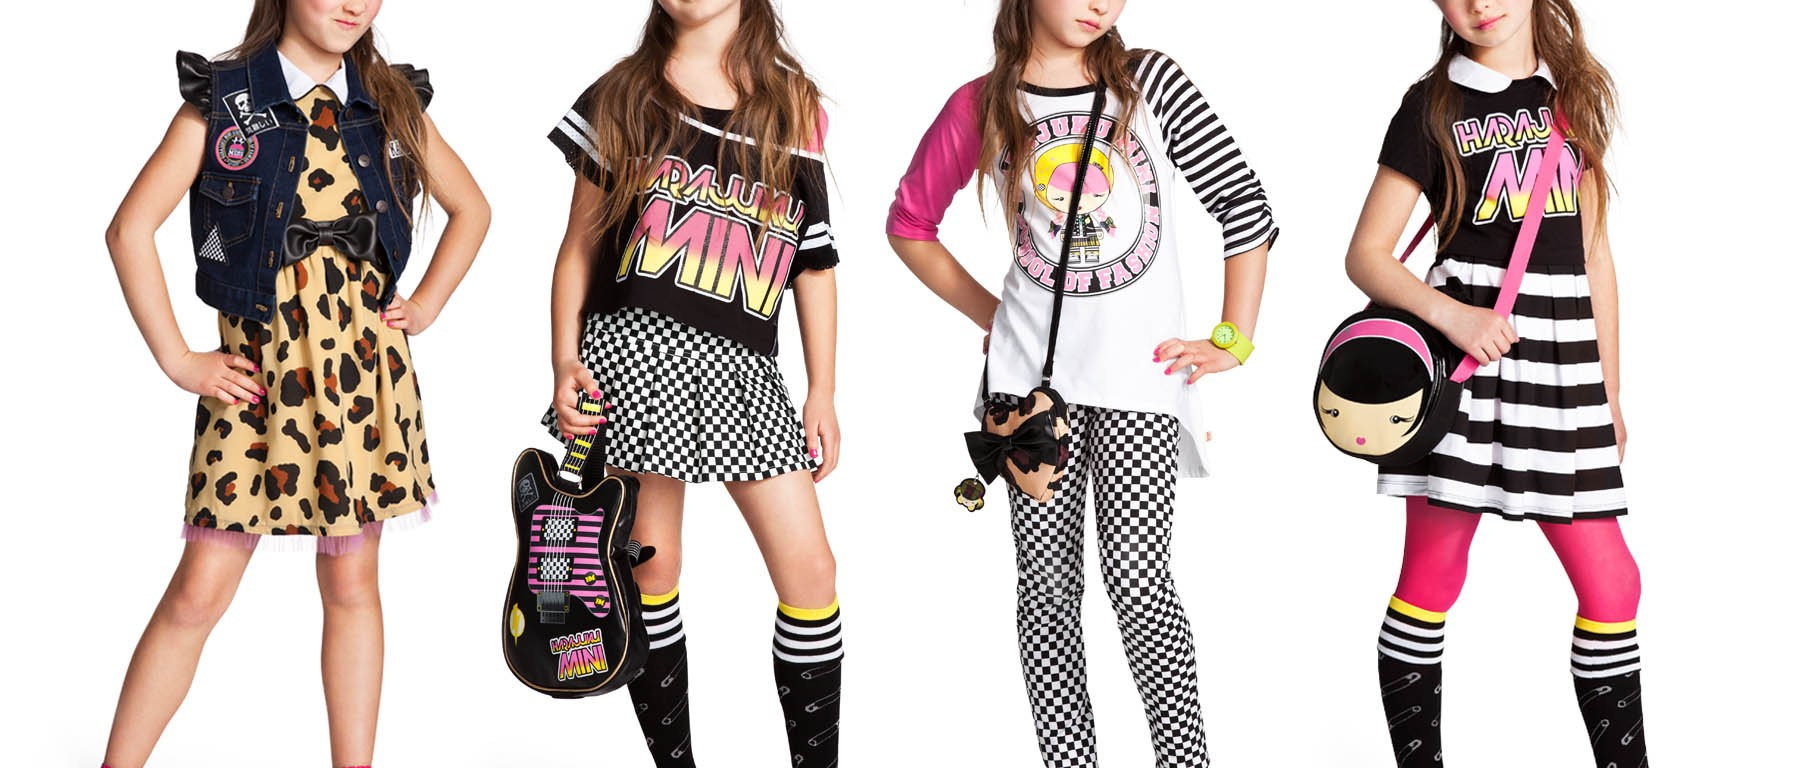 The Top 10 Best Tween Shopping Sites Plus The 5 Worst Girls Tween Fashion The Best Teen